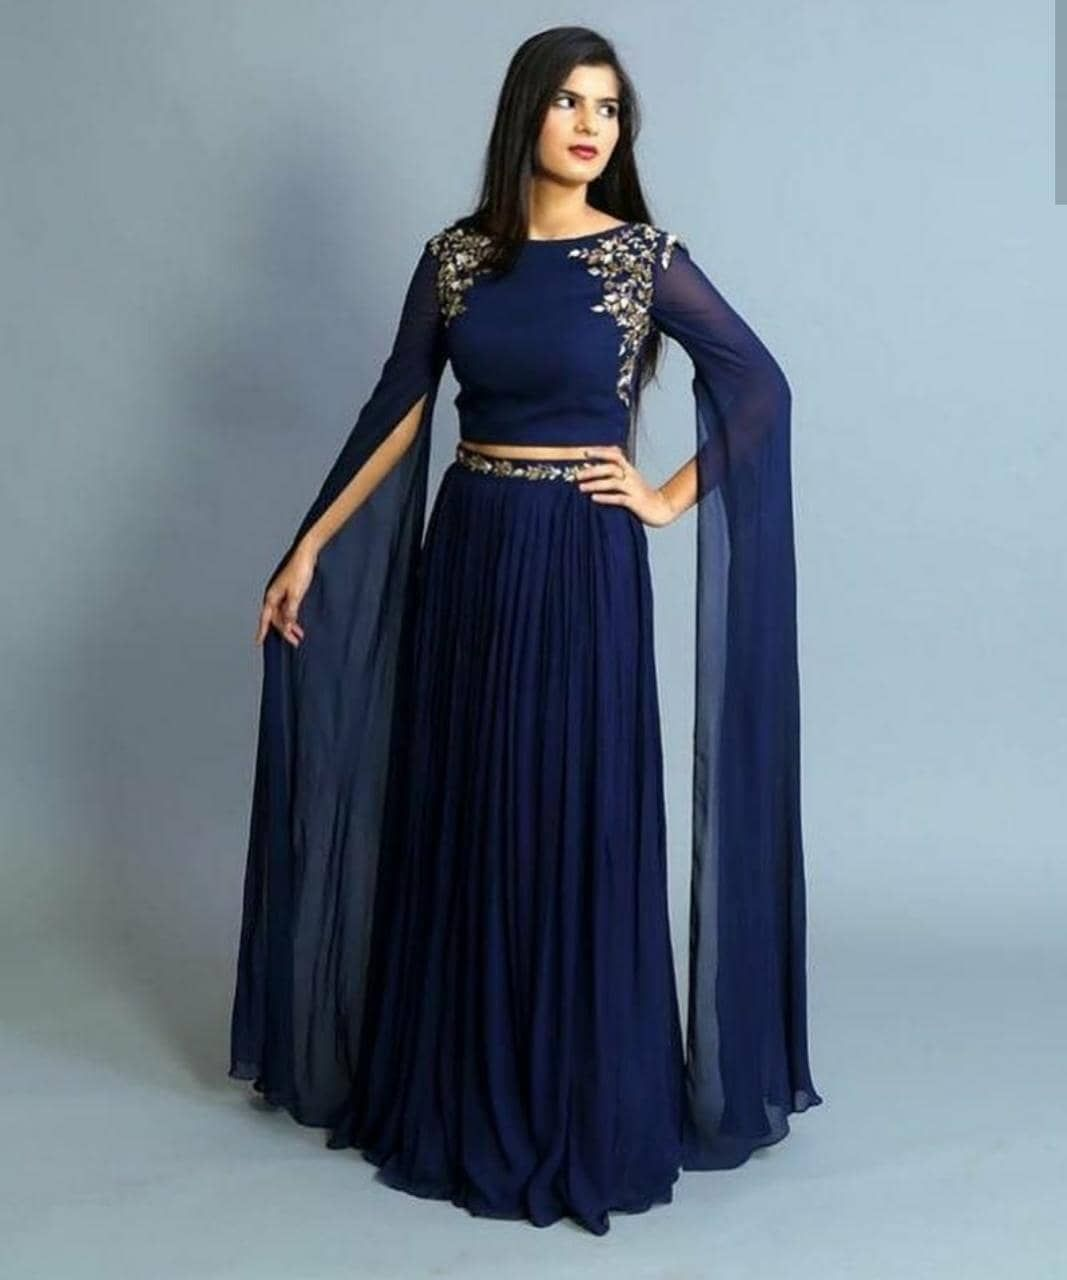 bbb484c72 Crop. Top with bell sleeves full length with hand embroidery and pleated  skirt with belt embroidery. Material - georgette with lining.